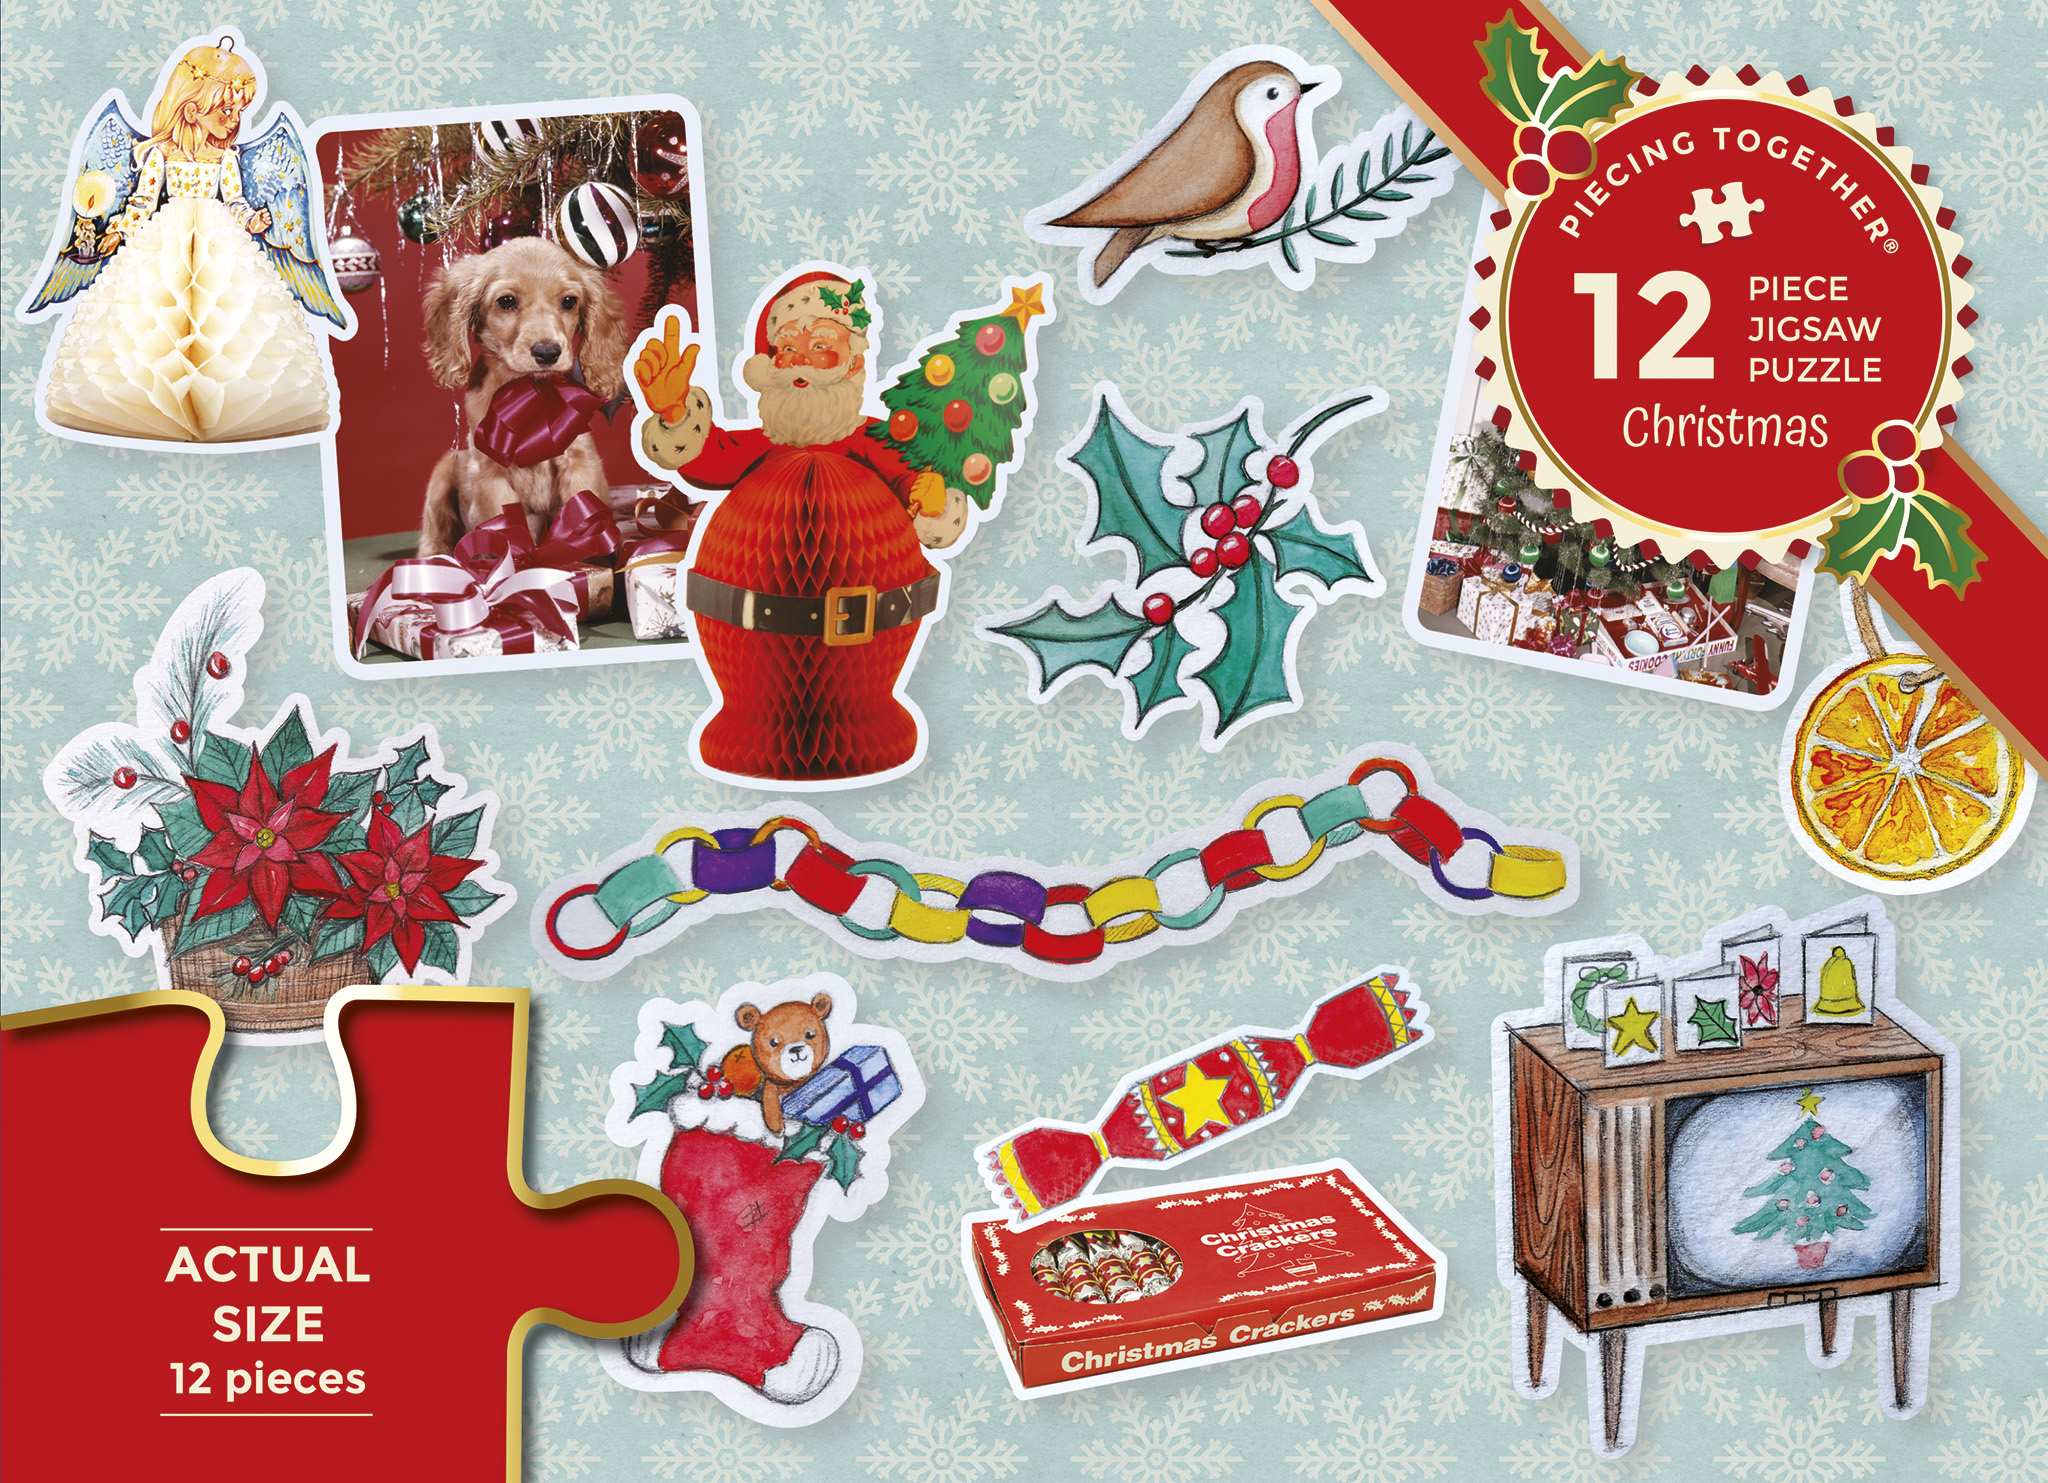 gibsons-christmas-12-teile-puzzle-gibsons-g2261